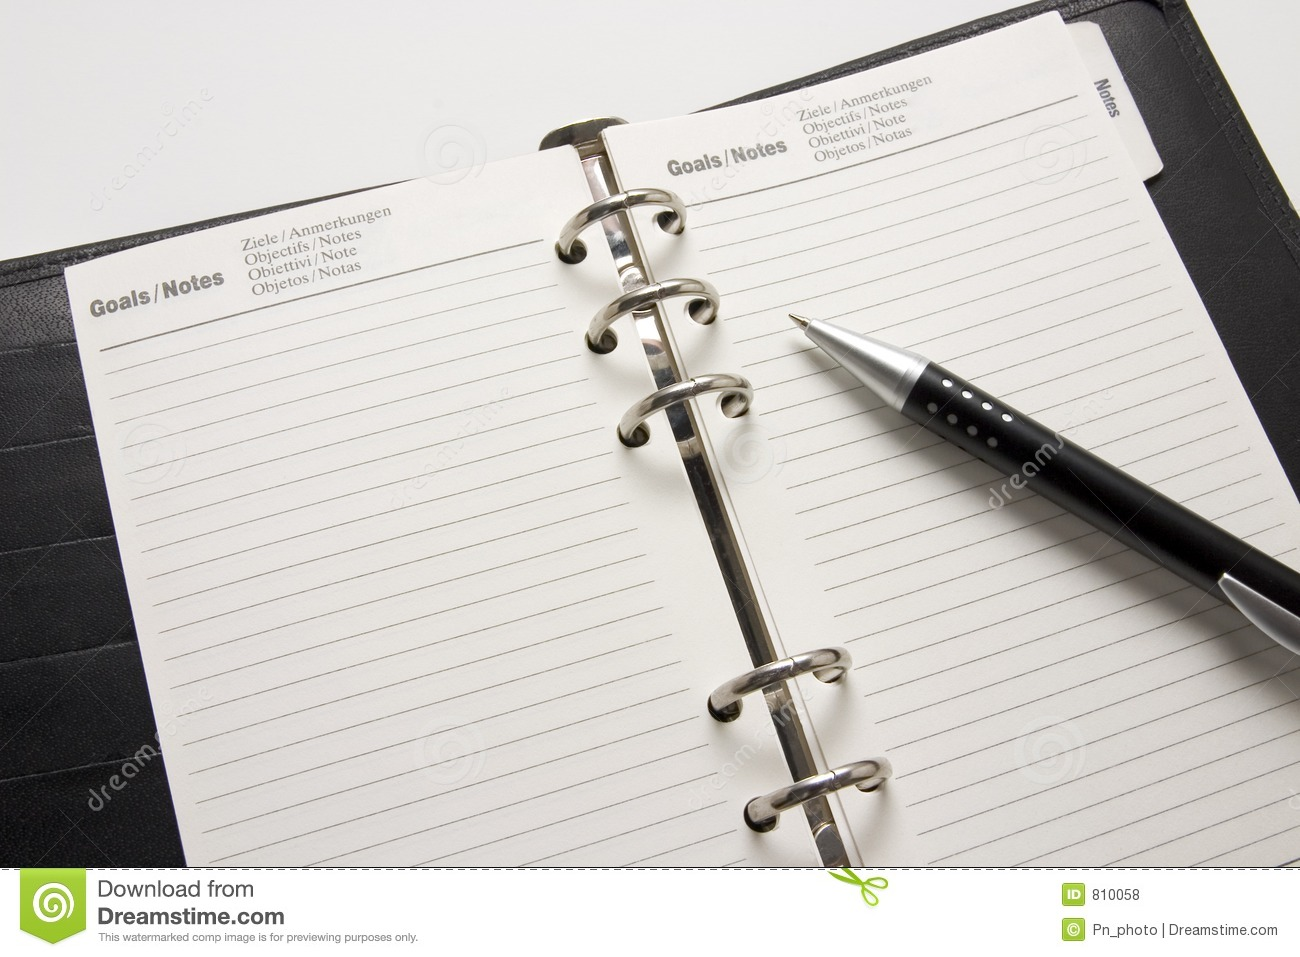 Business Agenda Goals Royalty Free Stock Photos - Image: 810058